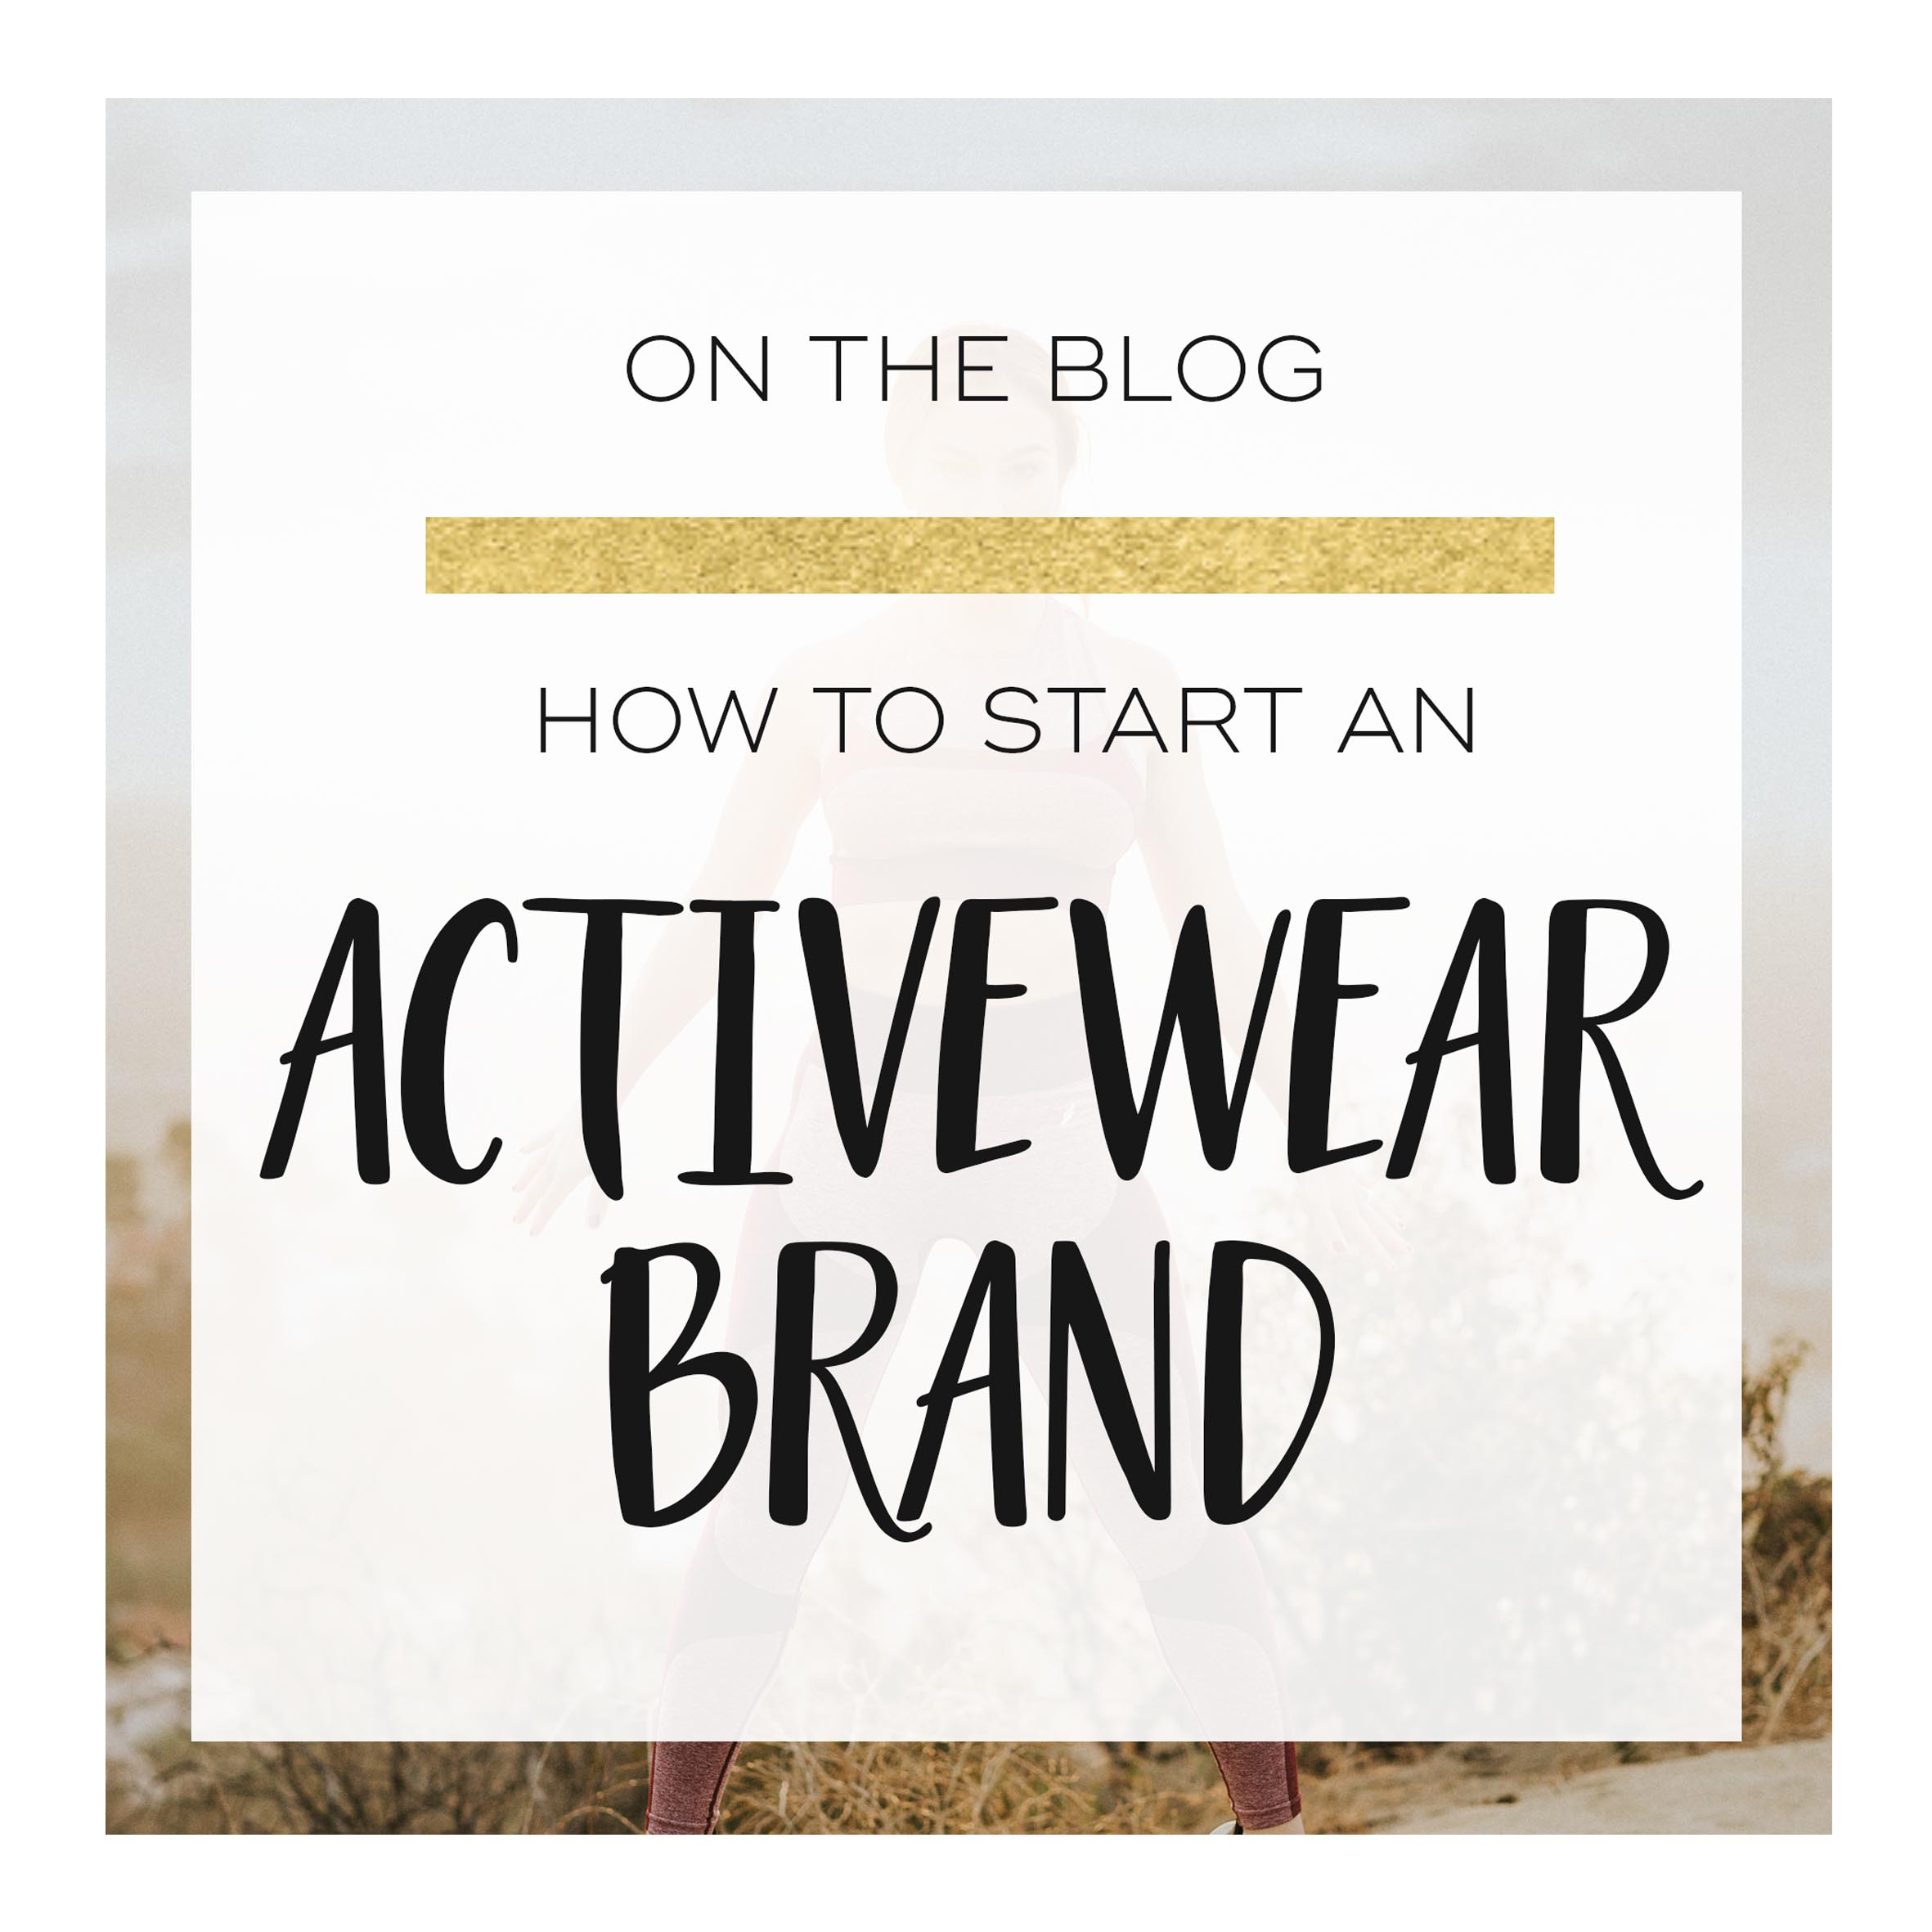 Start an Activewear Brand